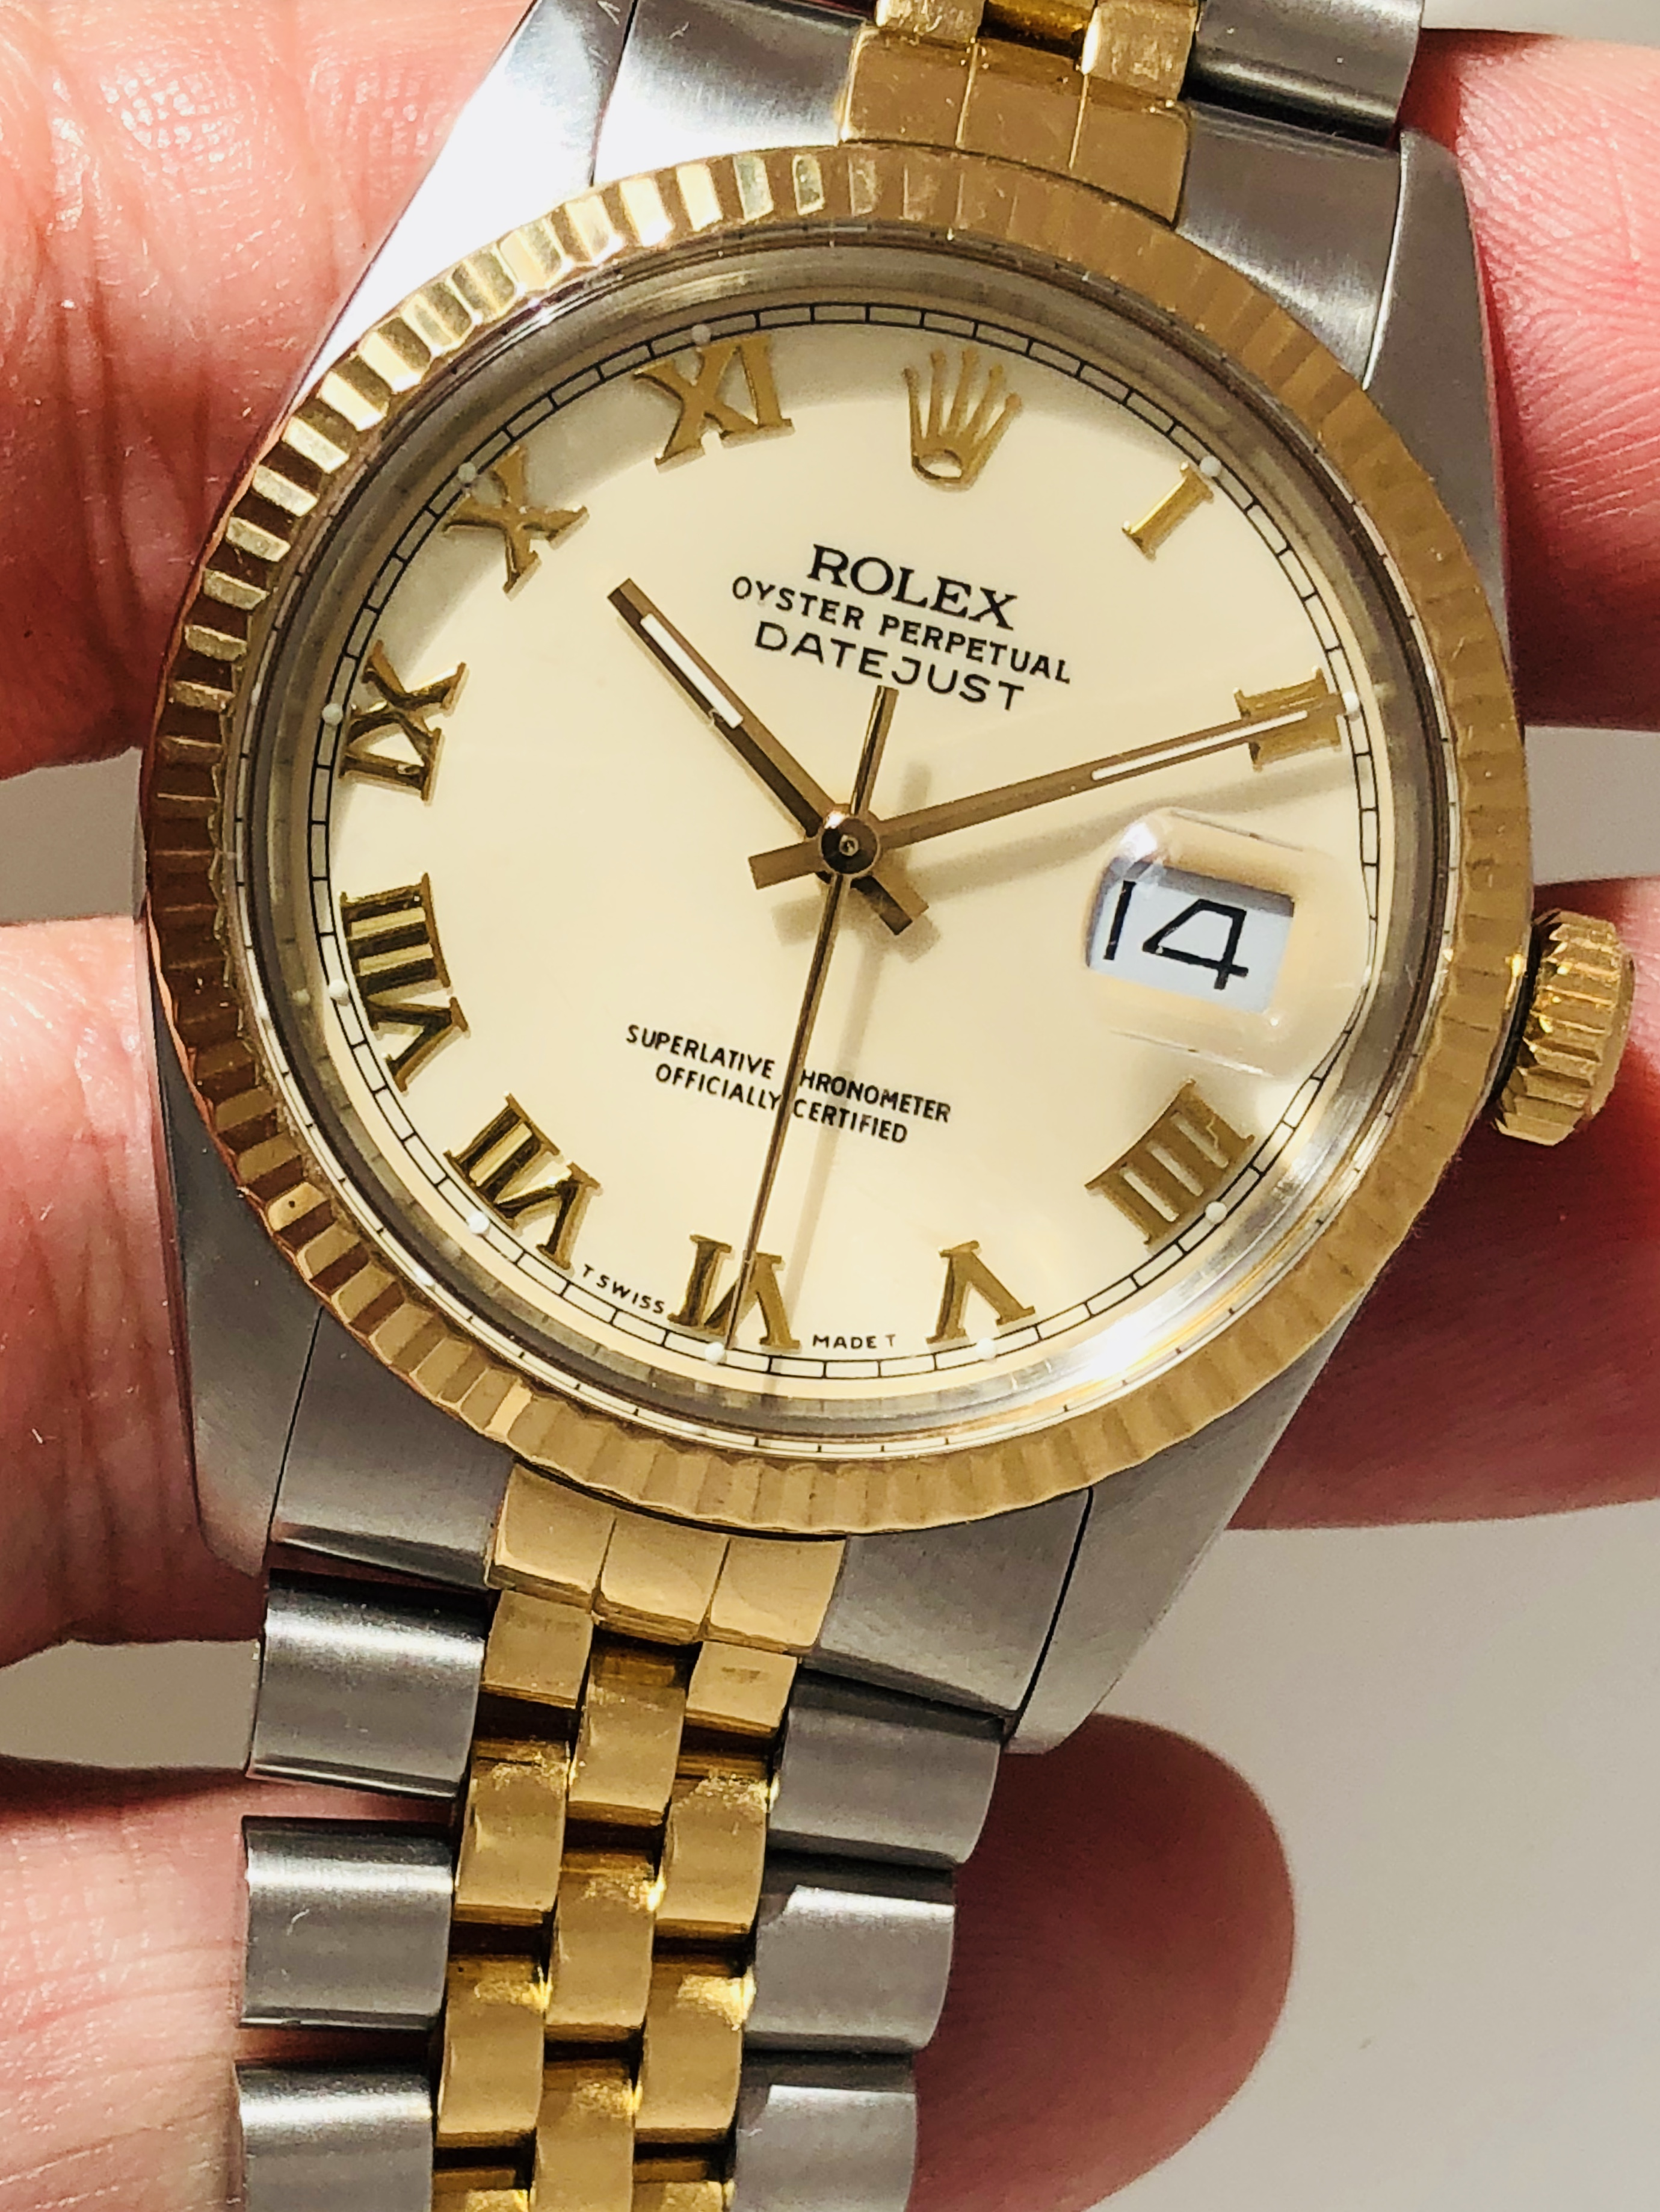 1988 Rolex Datejust Ref 16013 With Rare Ivory Roman Dial